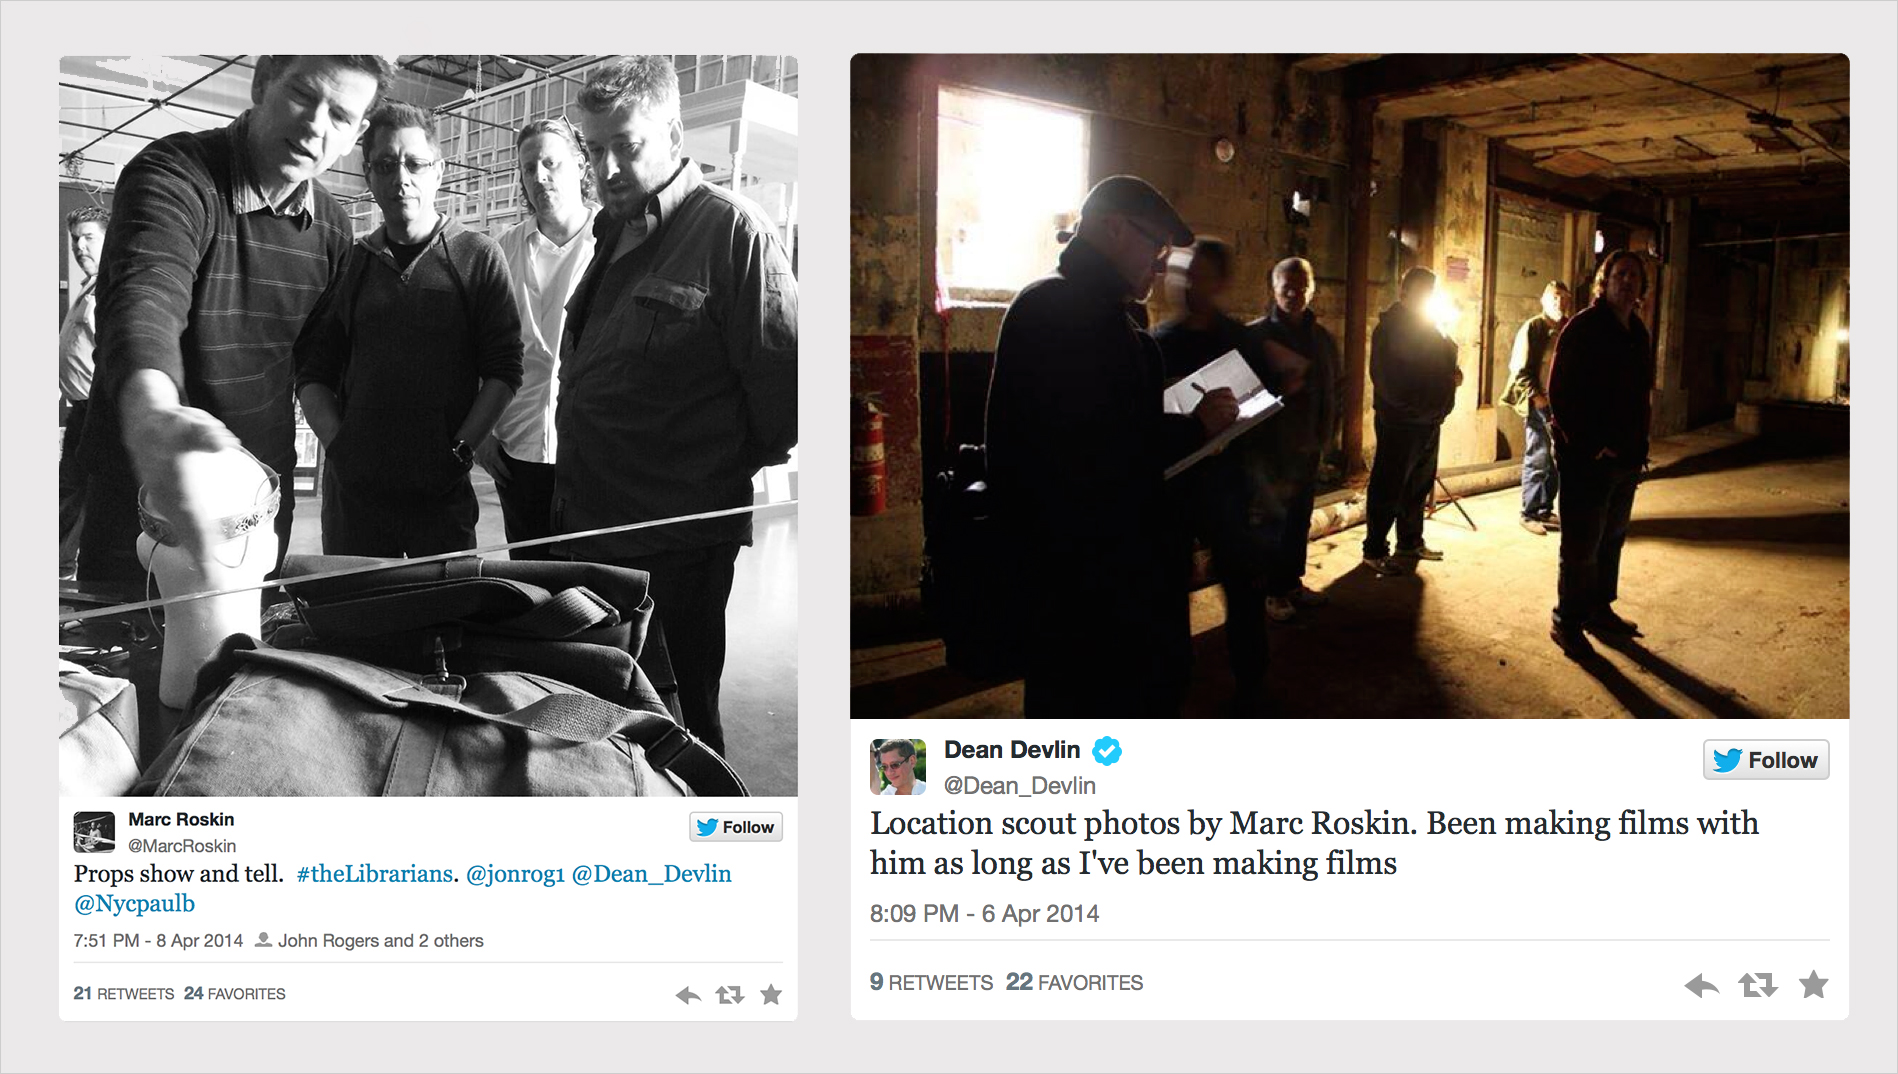 Tweets of  @Dean_Devlin  and  @MarcRoskin  (producers) on the filming status of  The Librarians , shot on location in Oregon.